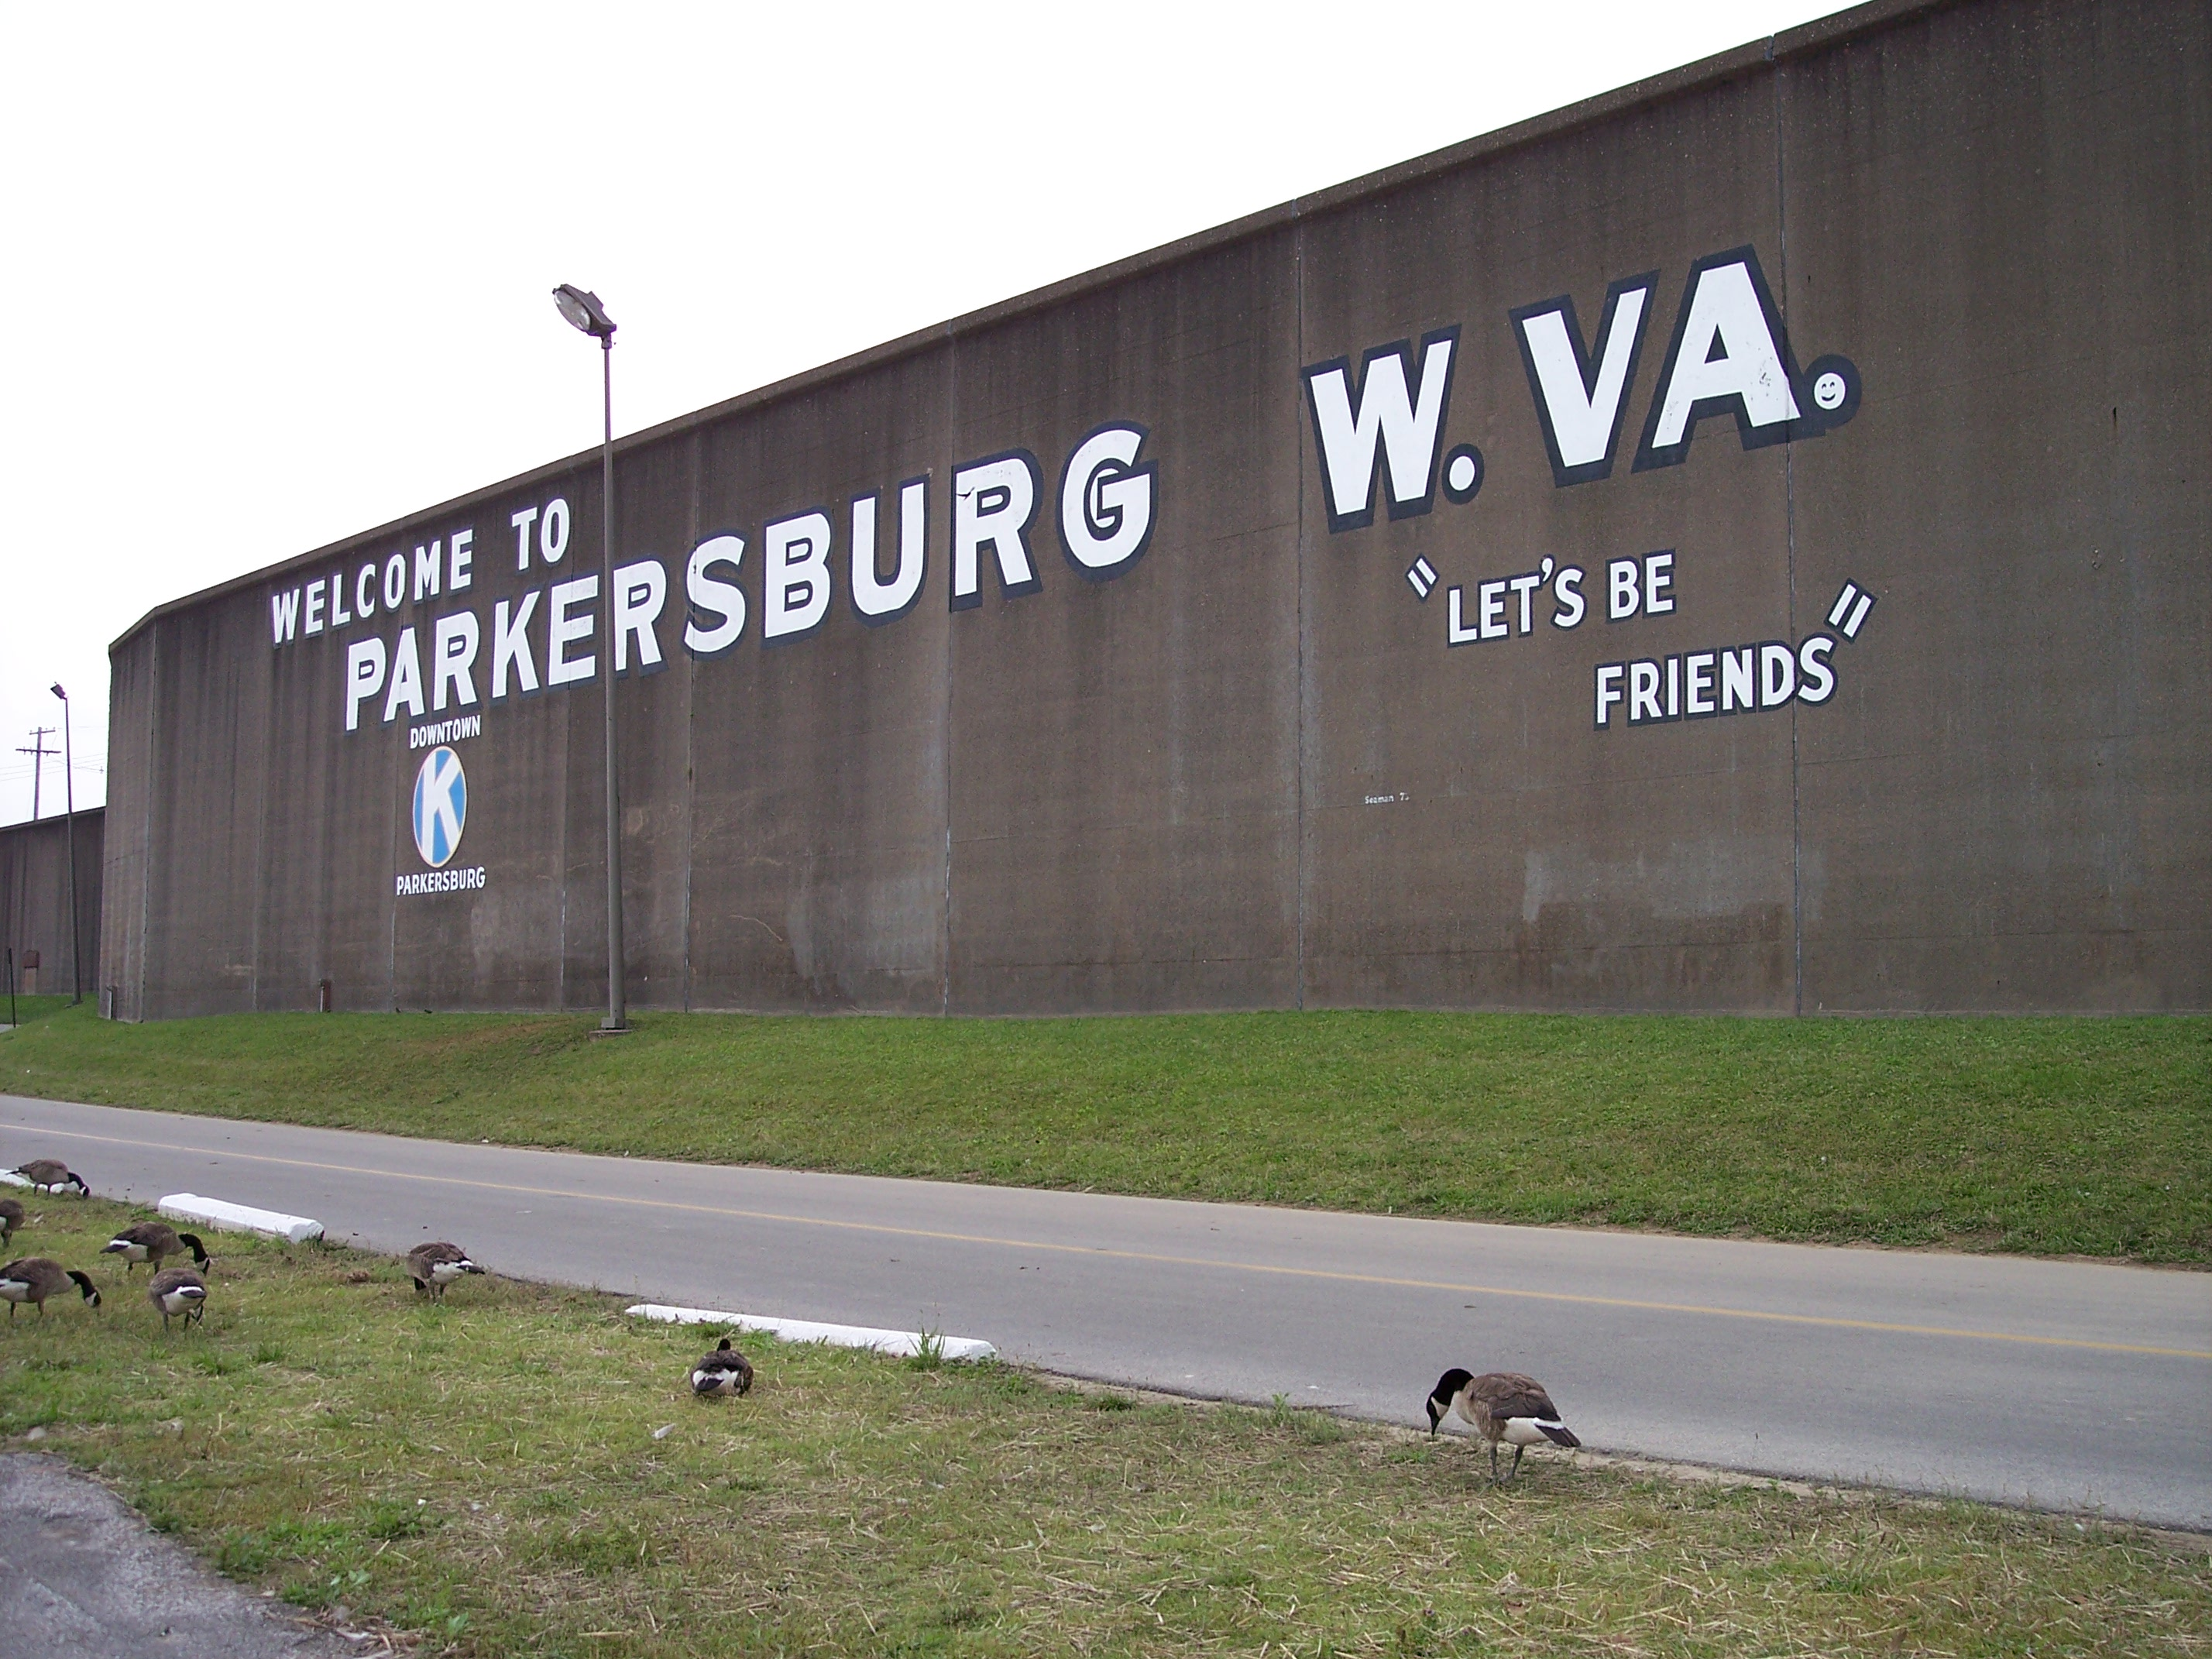 The drinking water supply of Parkersburg was polluted with PFOA by DuPont chemical company.